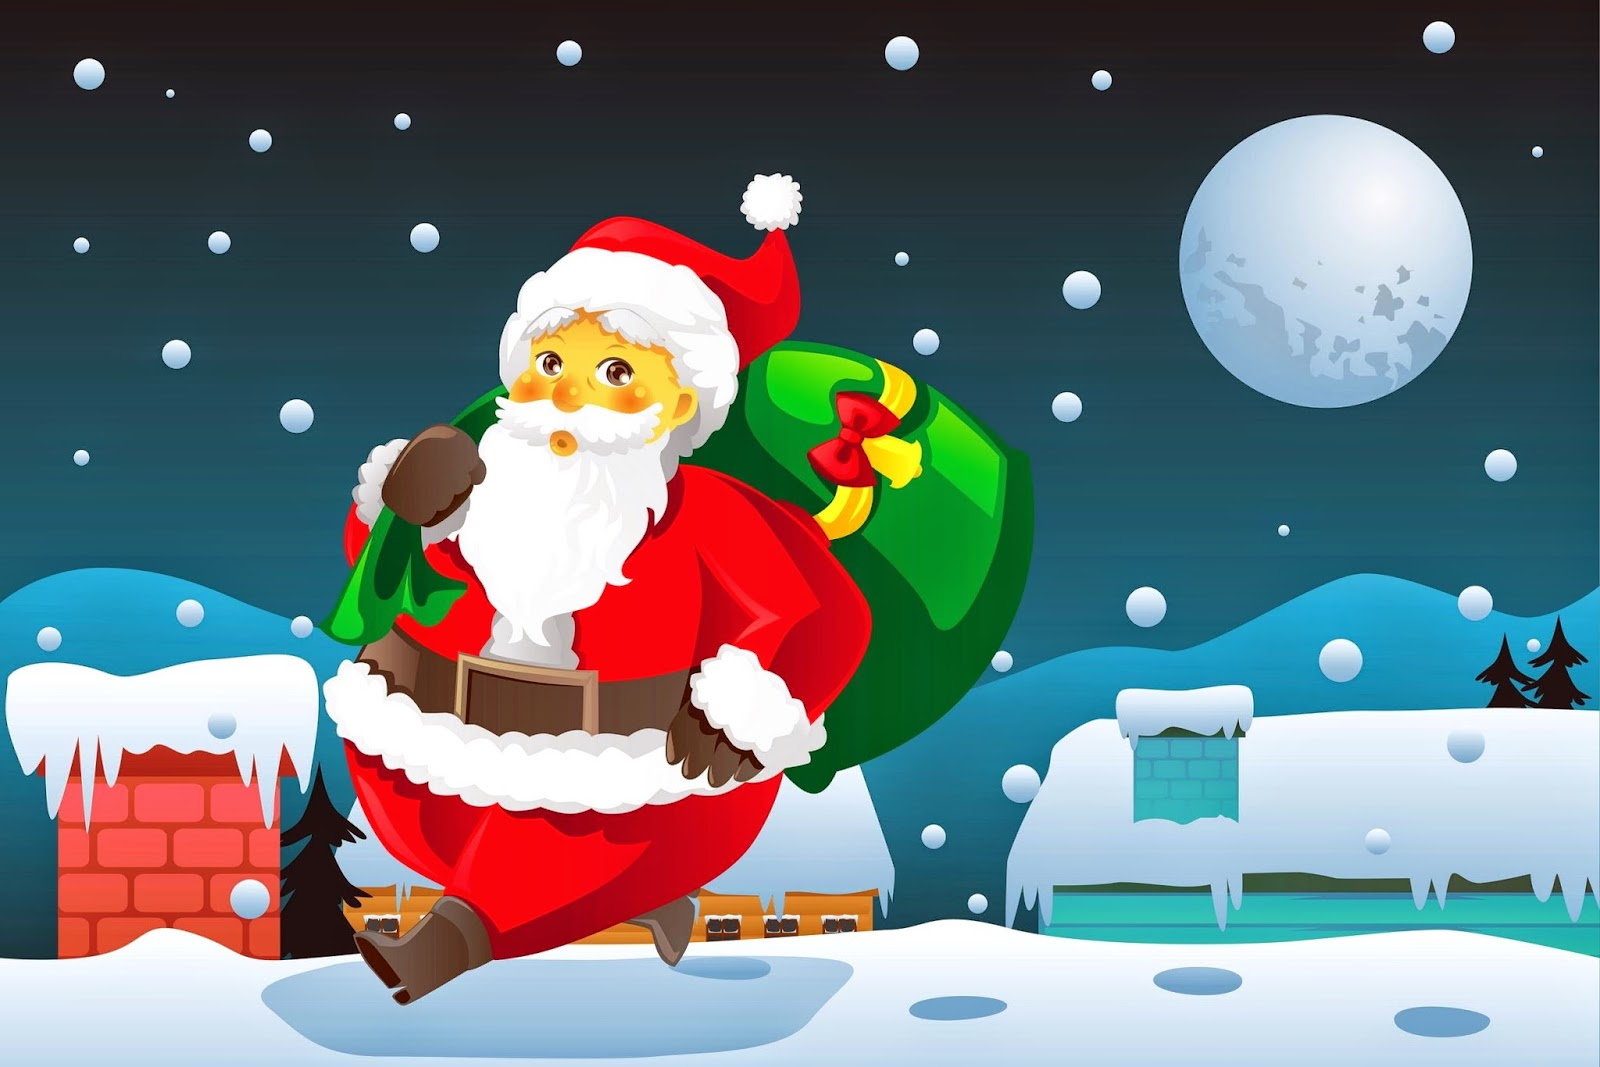 Santa-Claus-on-the-run-funny-cartoon-image-for-sharing-with-friends-and-family.jpg